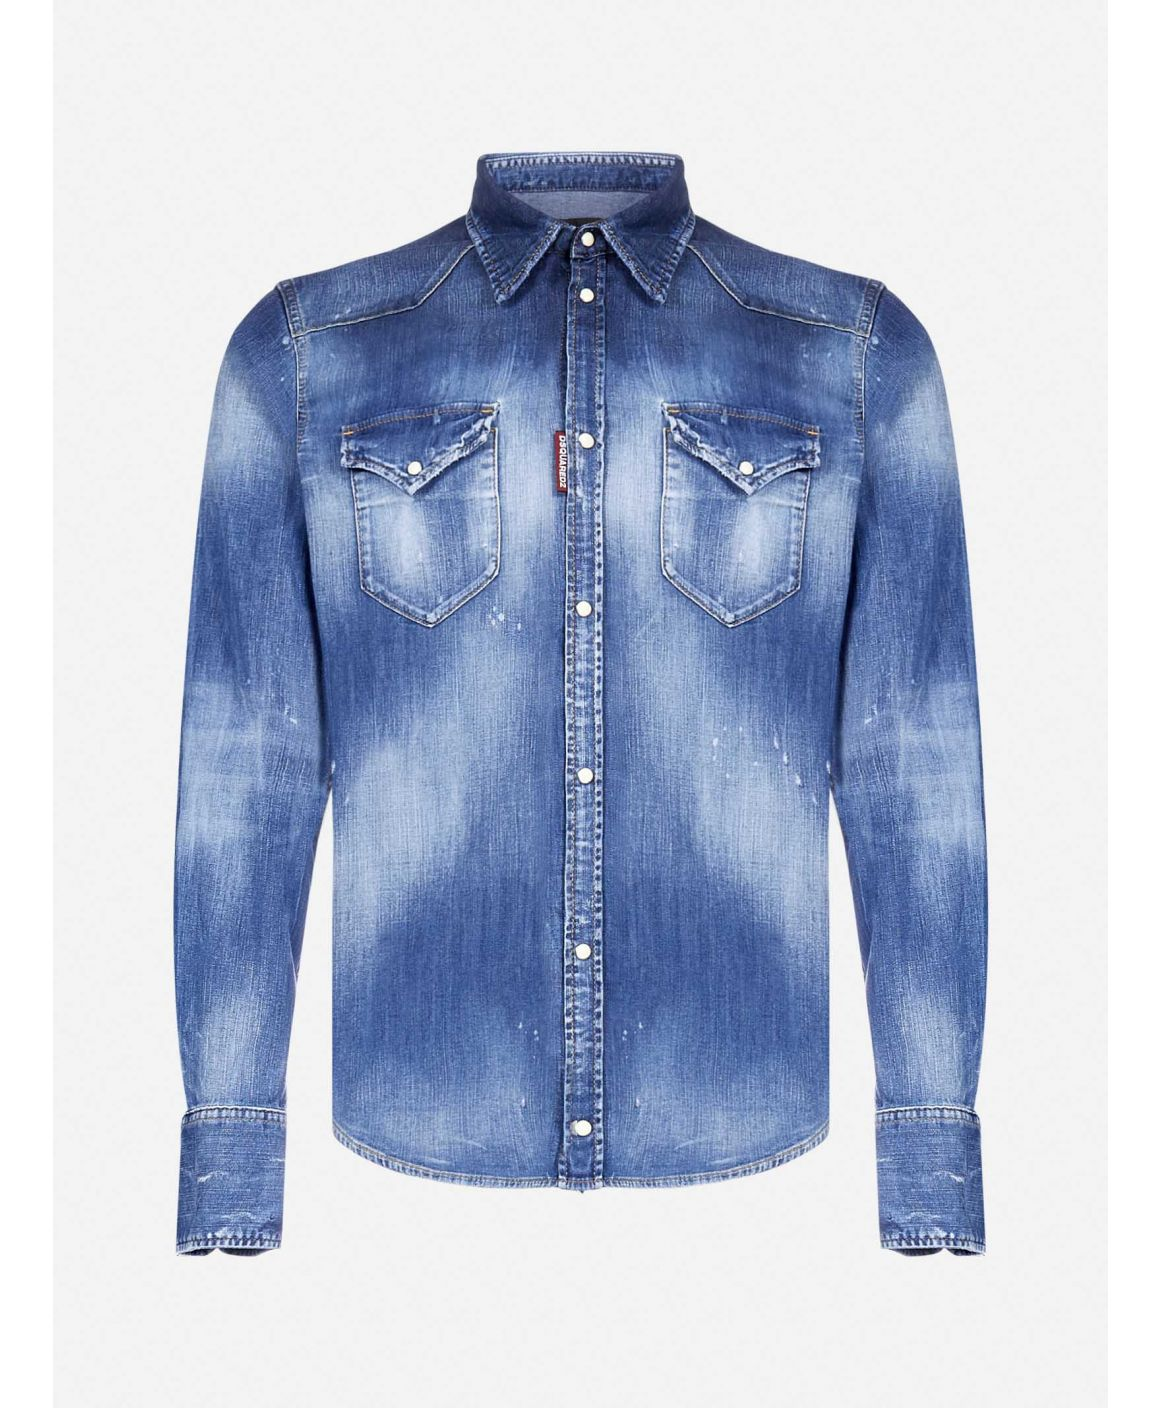 Dean stretch denim shirt